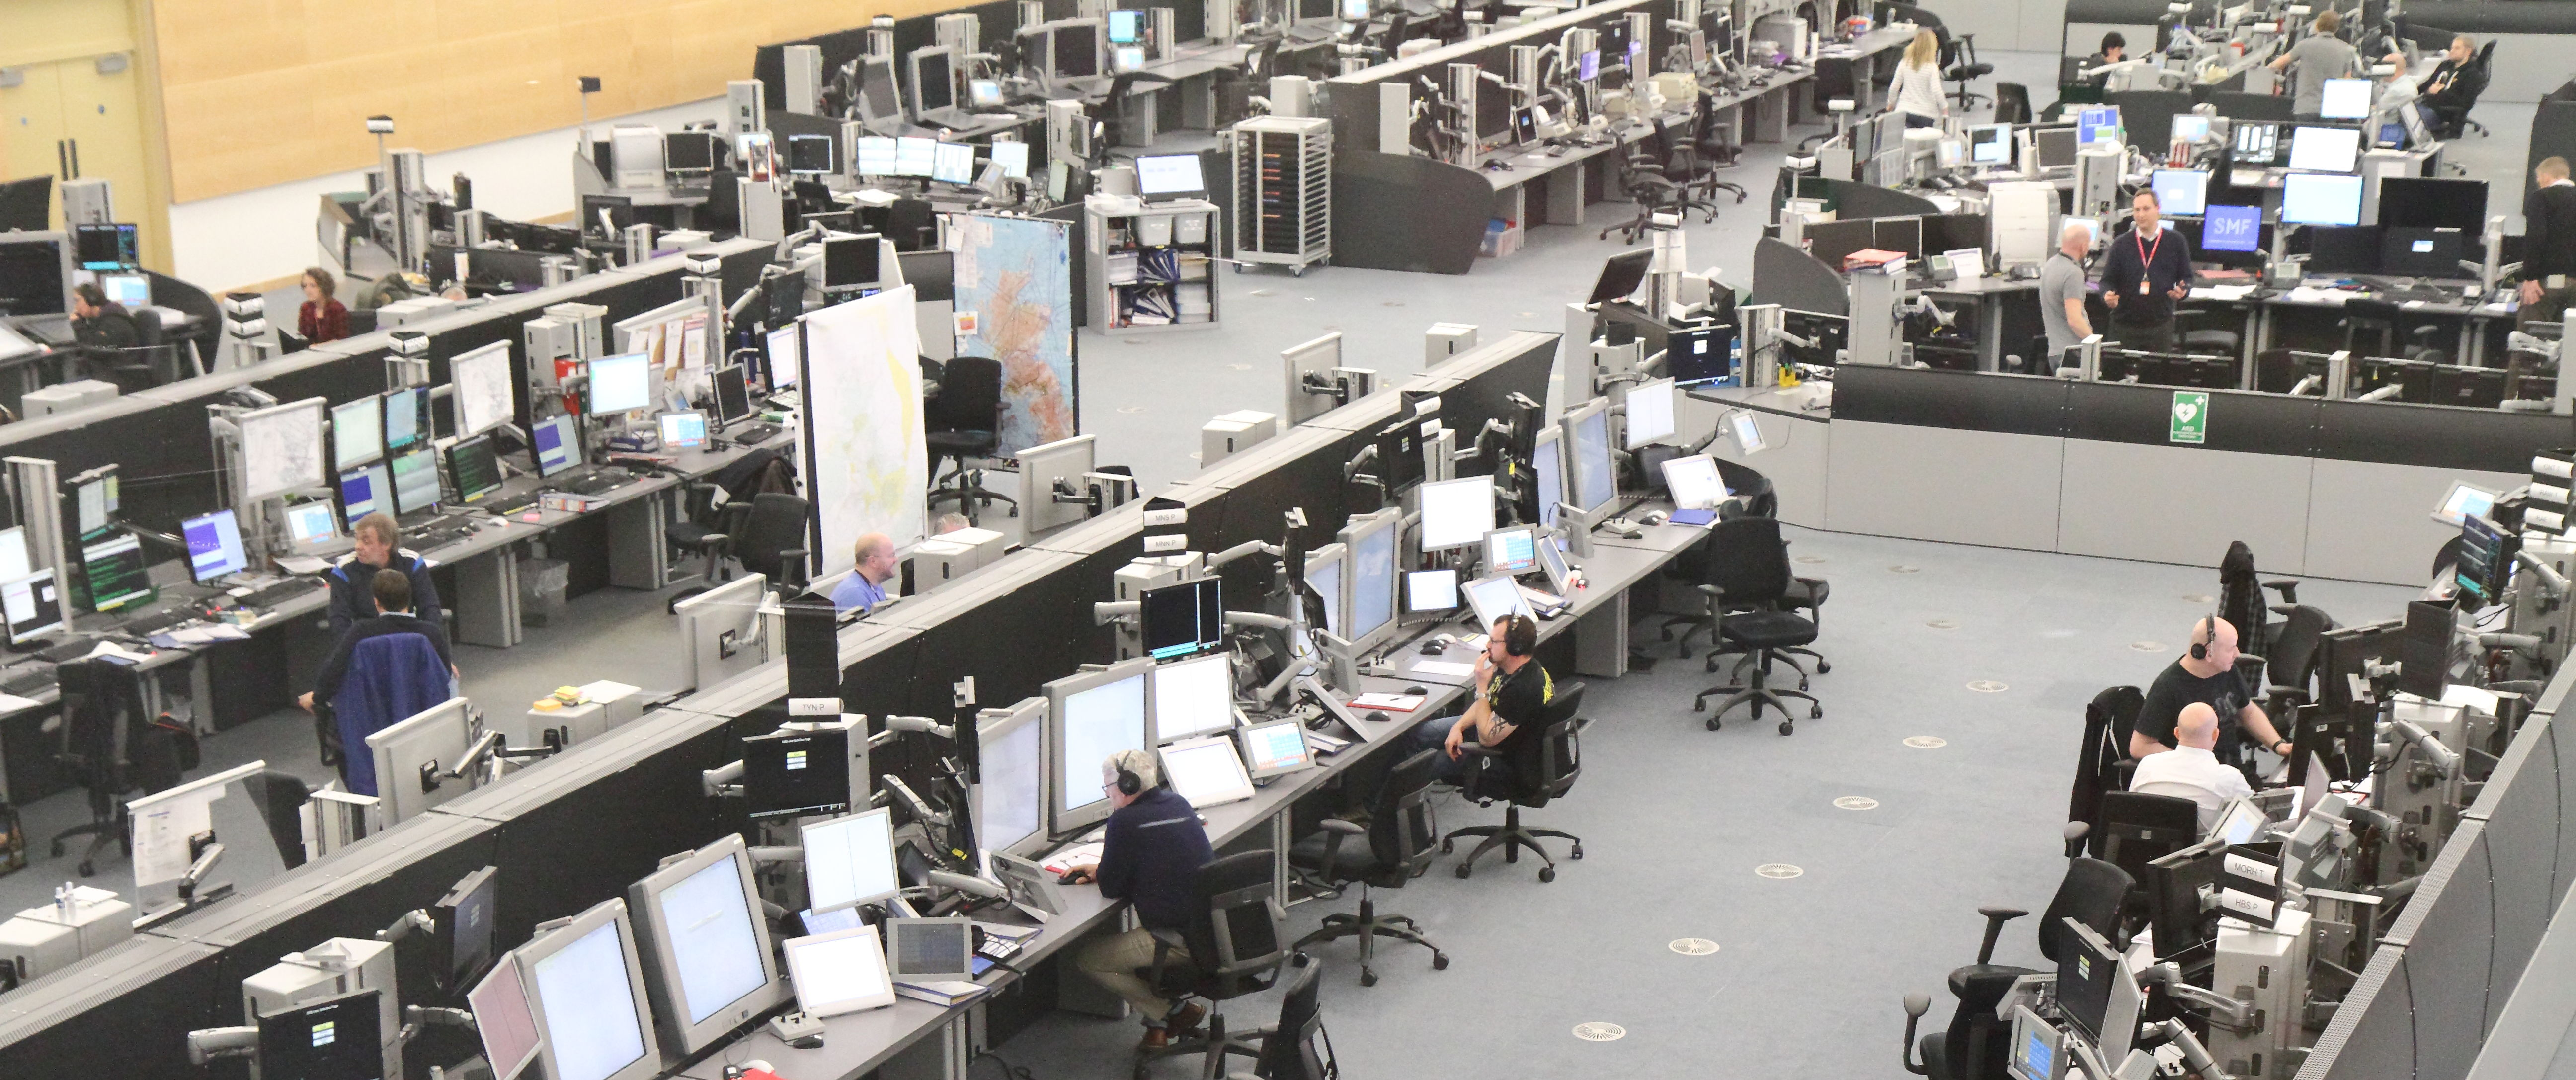 Trainee Air Traffic Controller >> New iTEC control platform rolls out at Prestwick to handle the heat of summer - NATS Blog